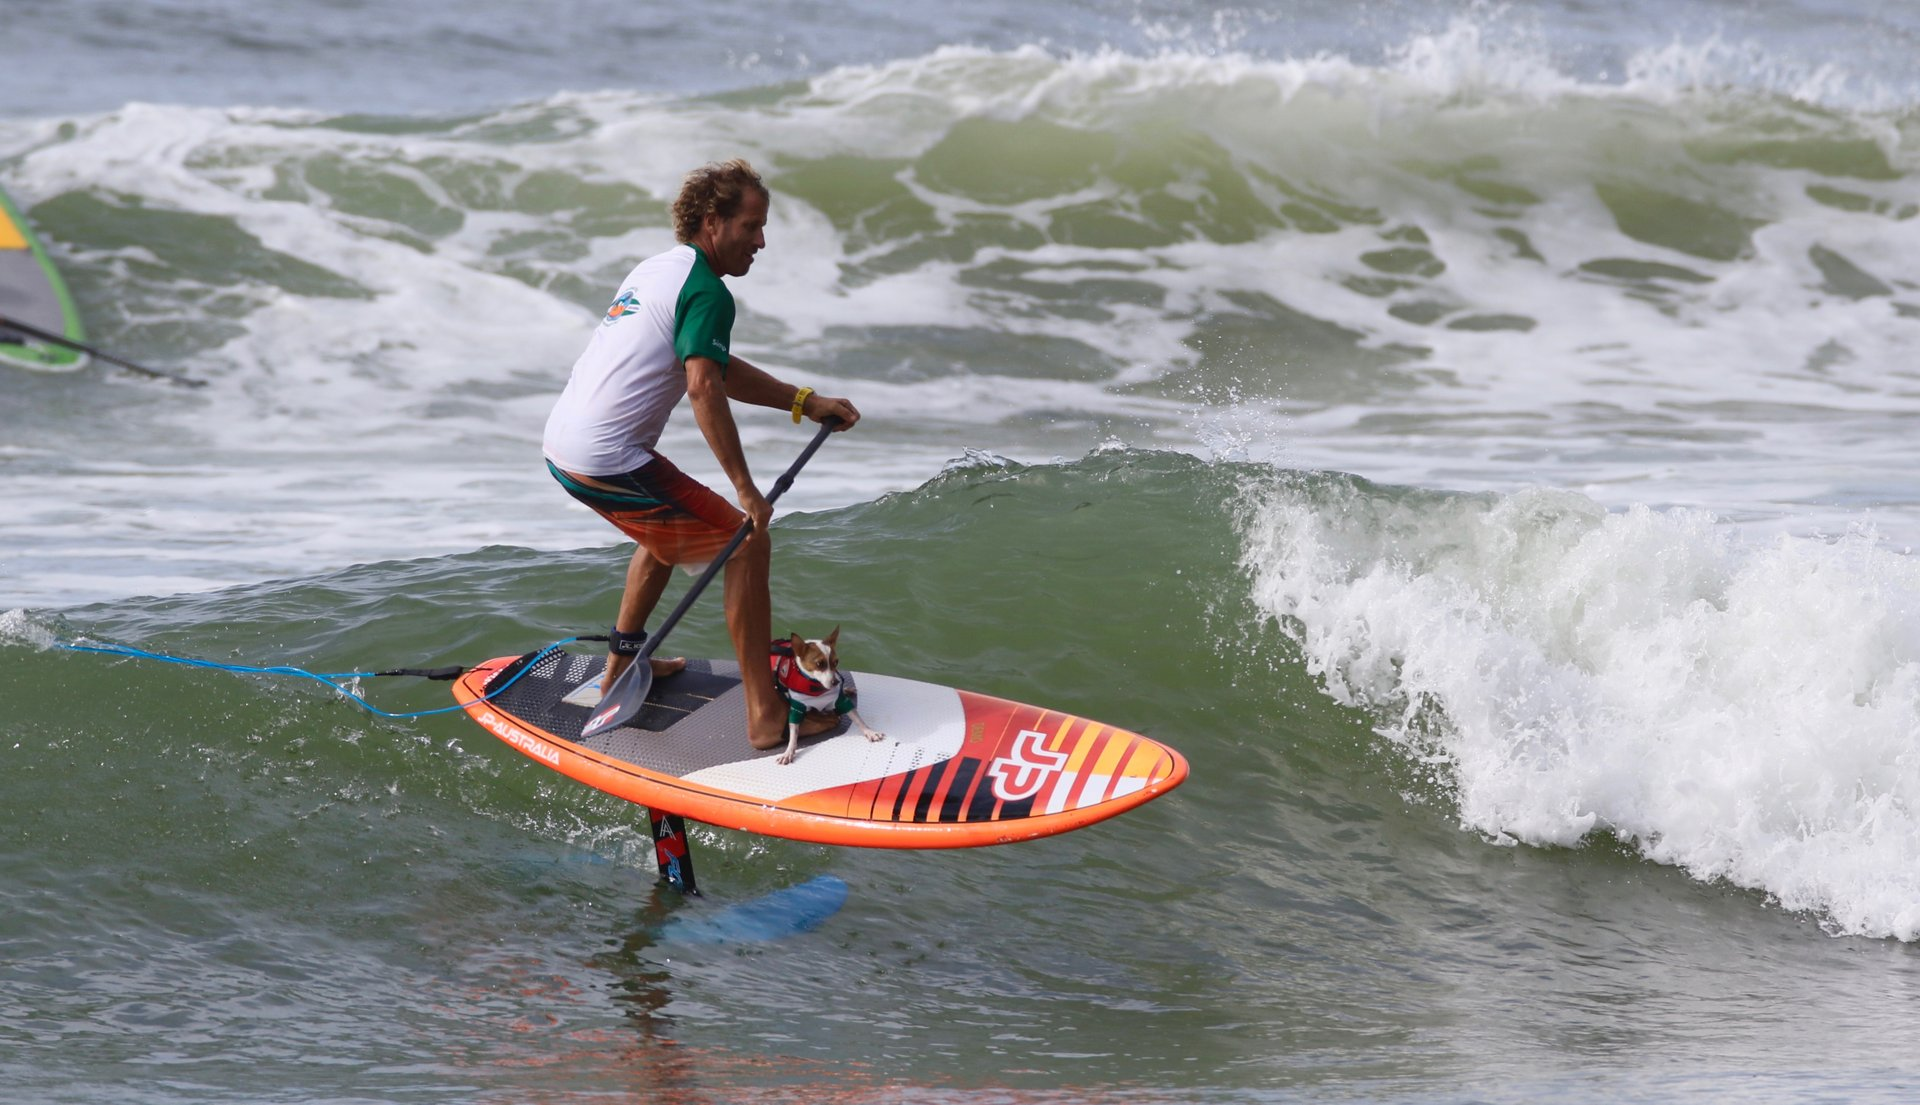 Best time to see Noosa Festival of Surfing in Australia 2020